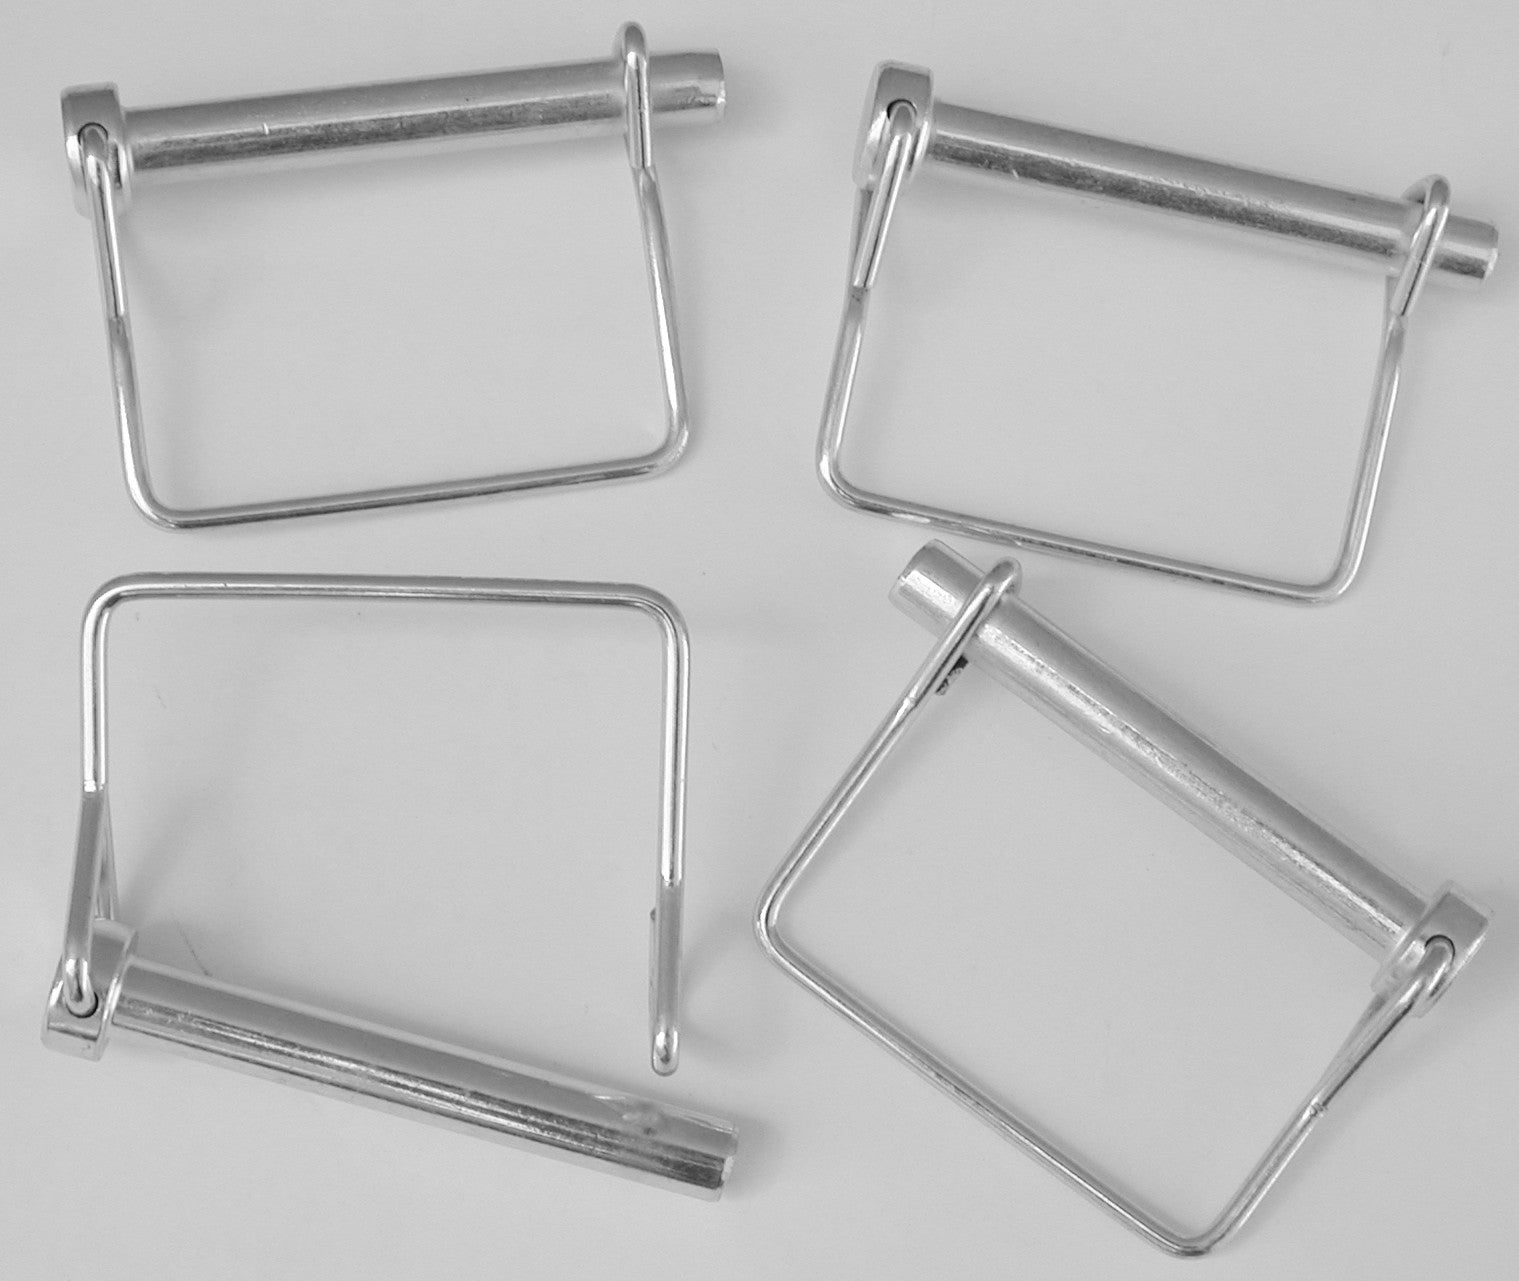 Steel Locking Pins